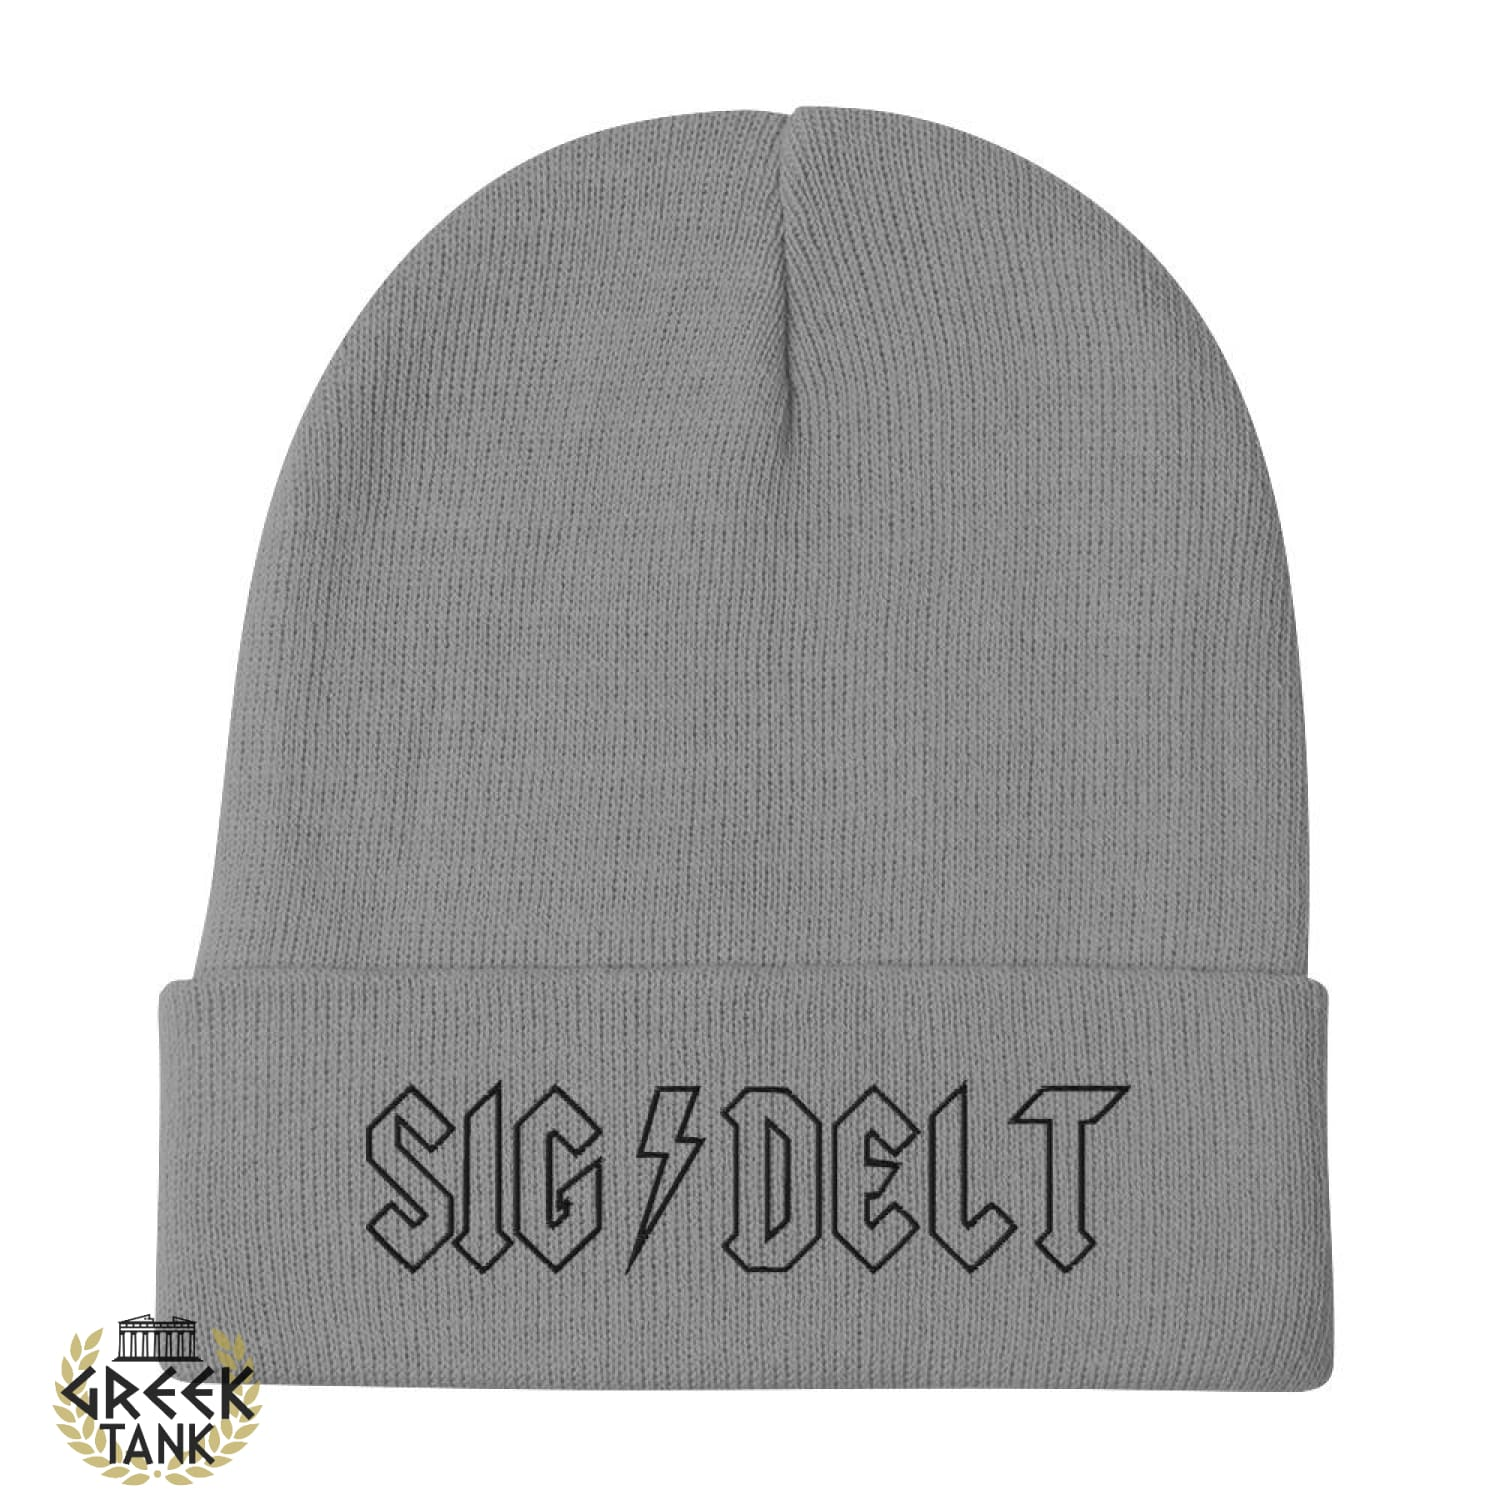 Sdt Embroidered Beanie Rock N Roll